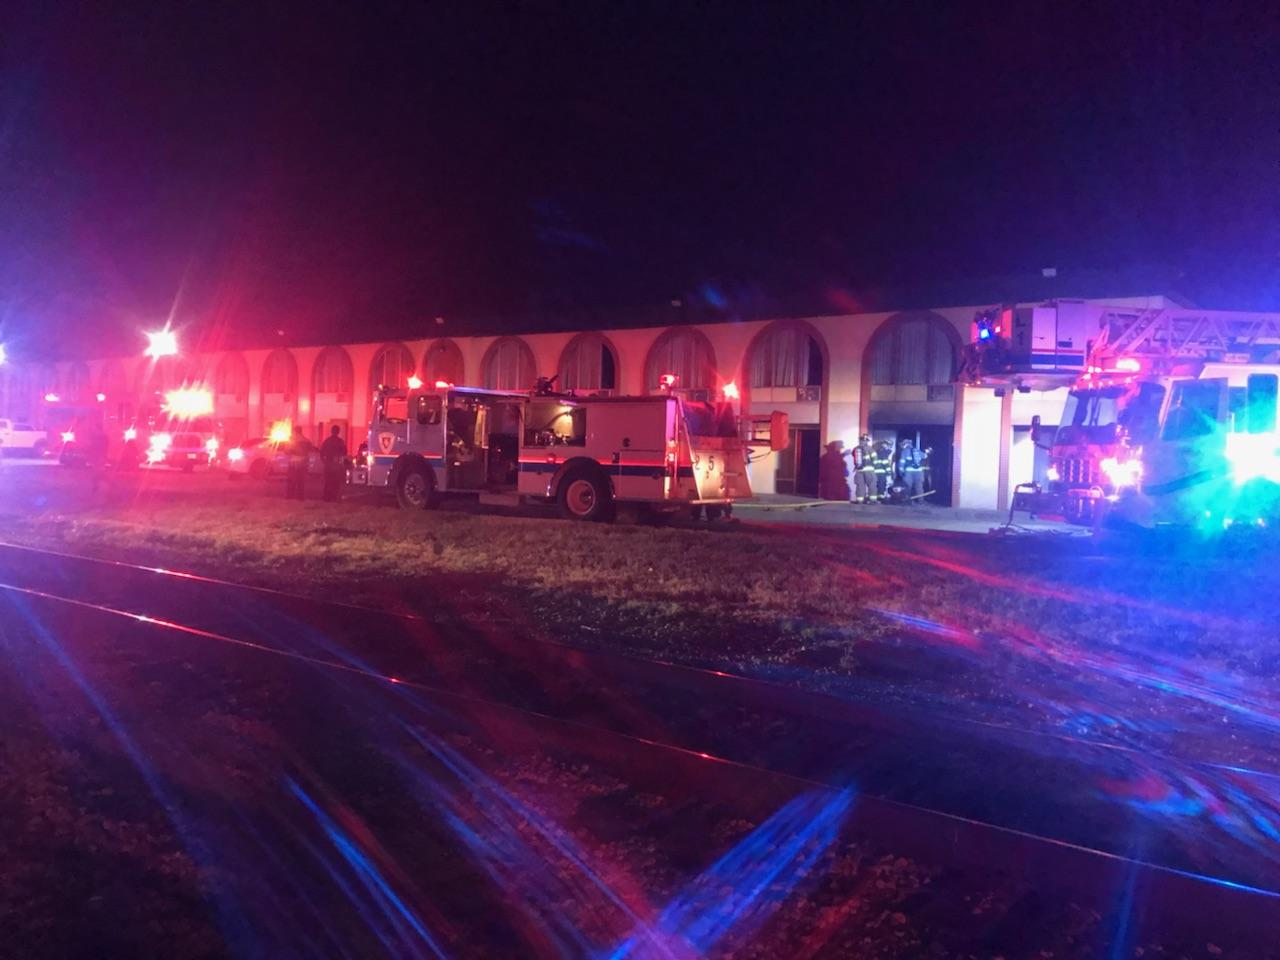 San Angelo Firefighters work quickly to knock down a fire at a hotel Thursday night.